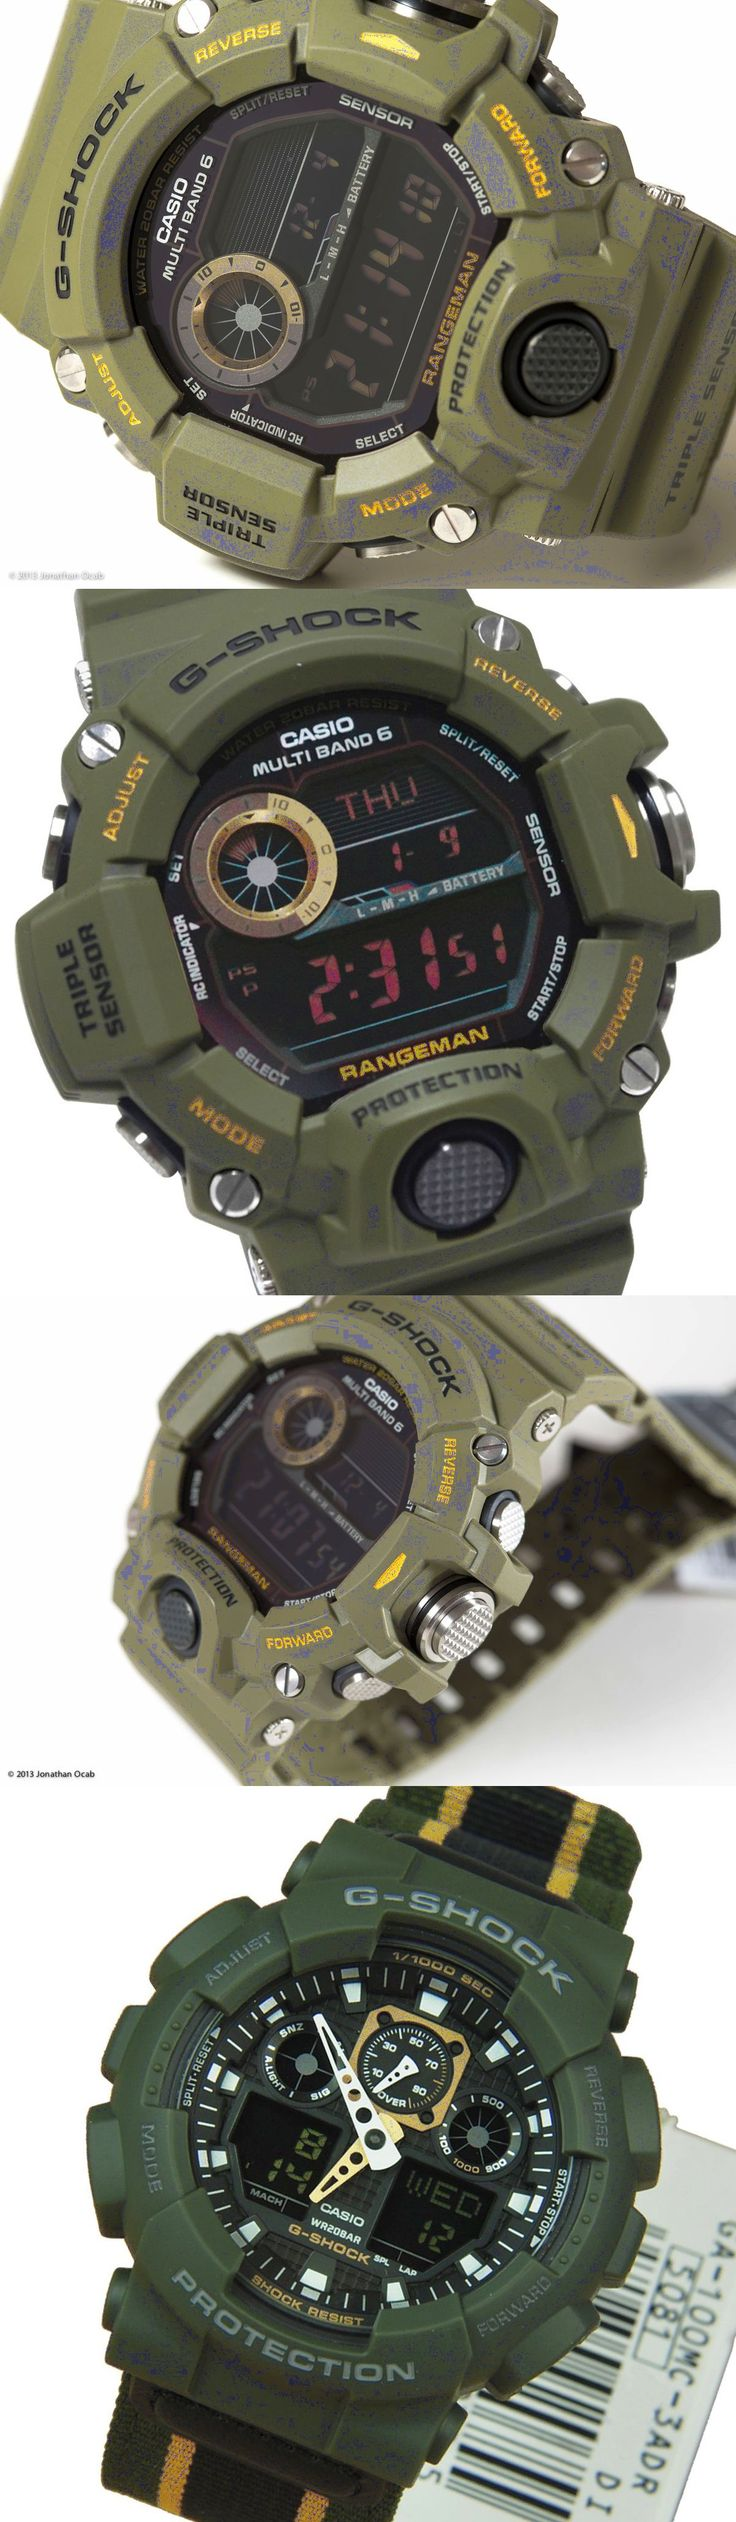 Cool G-Shock military green best Casio watches http://www.slideshare.net/leatherjackets/best-watches-reviews-2014-casio-gshock-black-watches-for-men